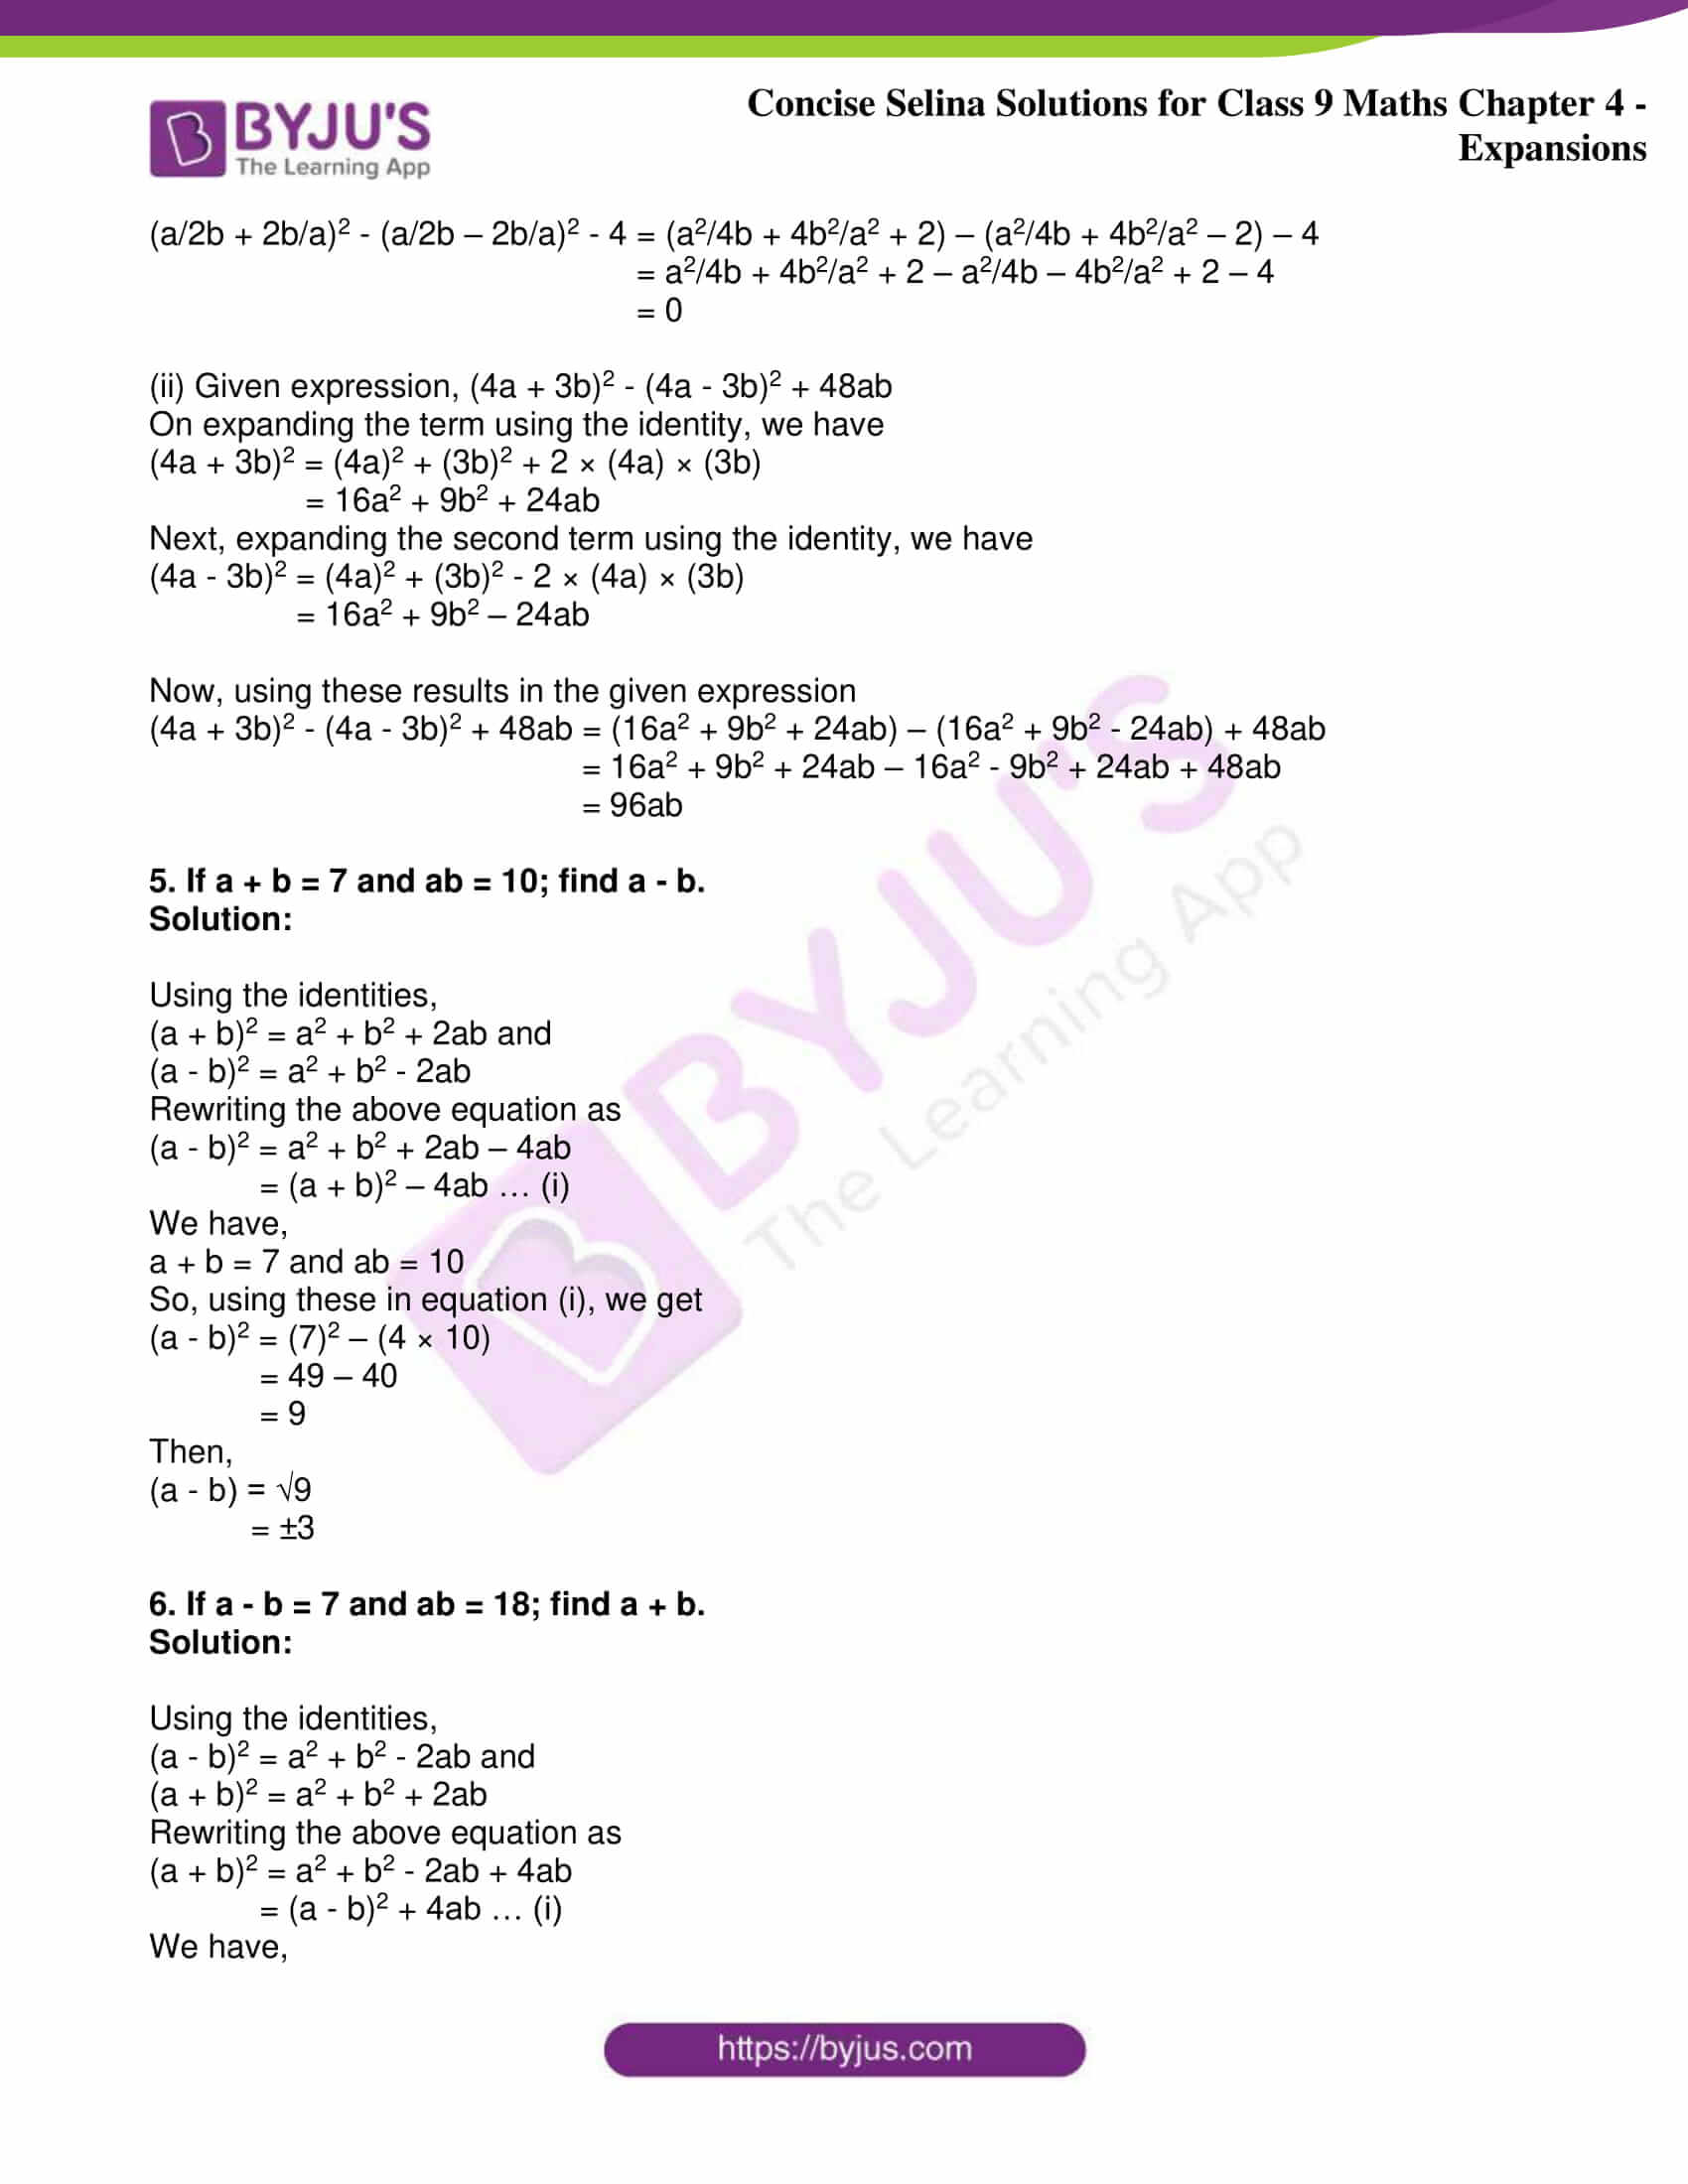 icse class 9 maths may10 selina solutions chapter 4 expansions 03